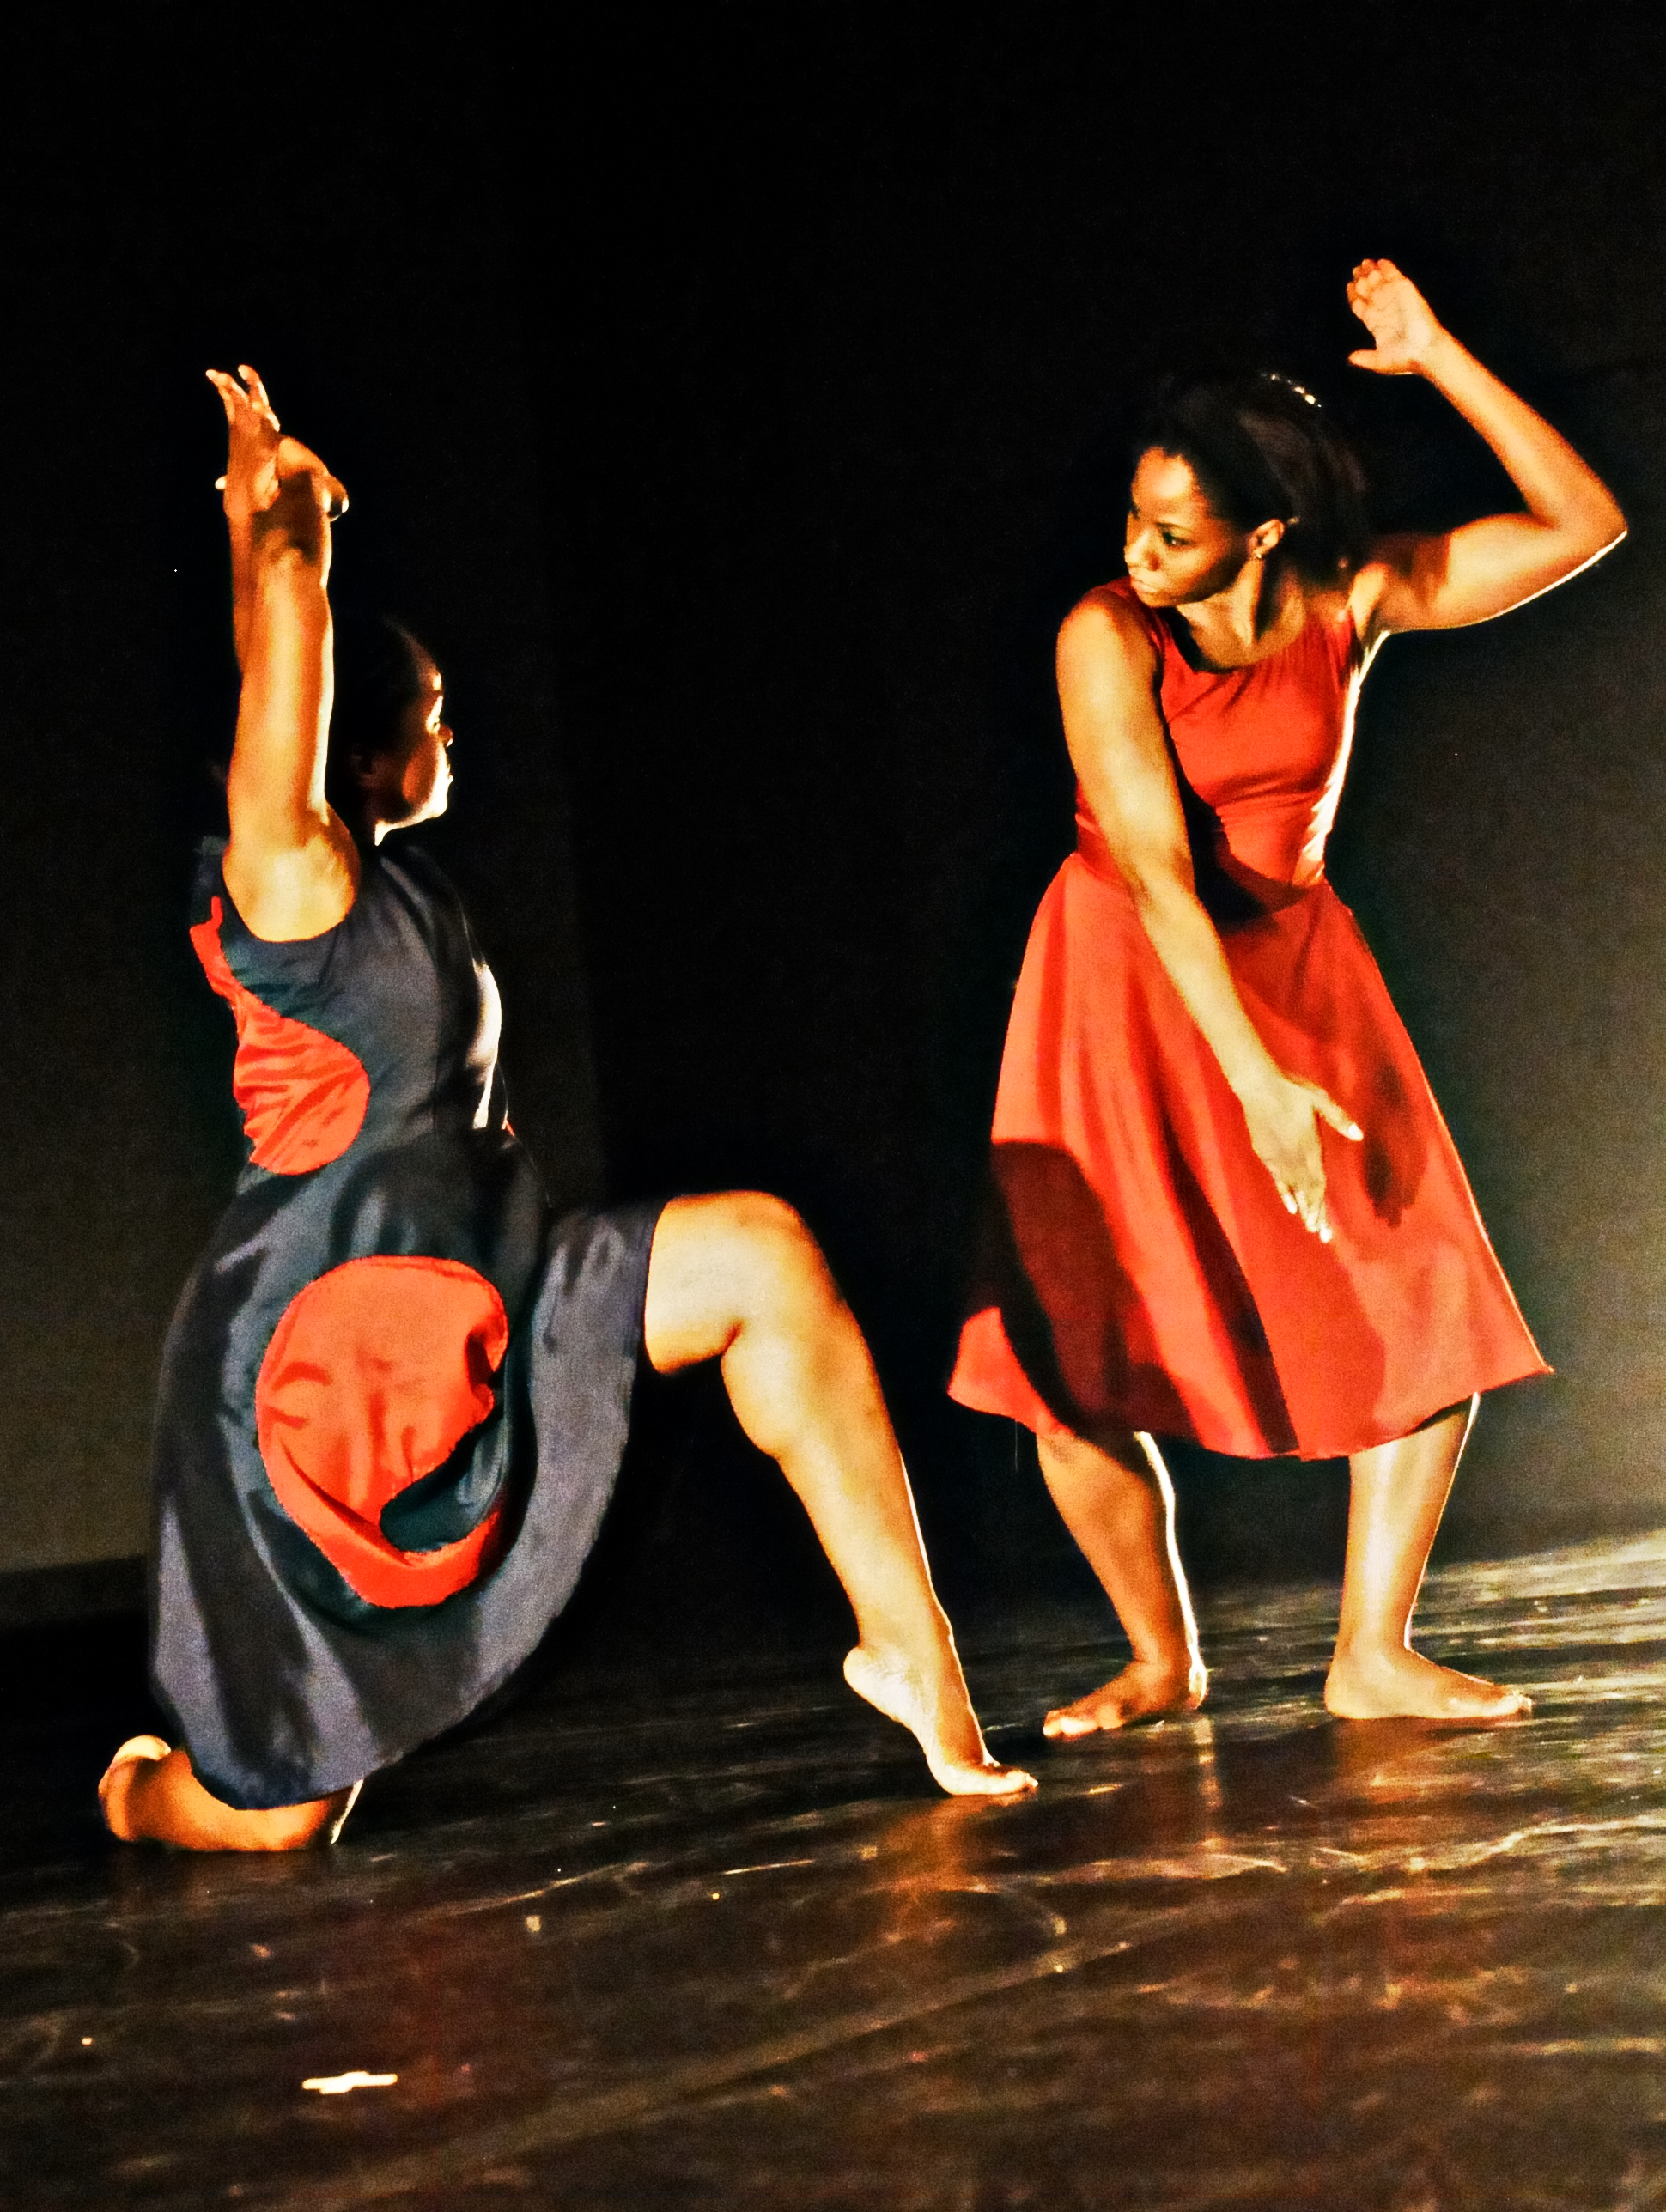 Fist (2011)  Dancers: Anika Marcelle and Aviance Bain Dance Show: COCO Dance Festival 2011 Photography: Karen Johnstone  Location: Little Carib Theatre, Port-of-Spain - Trinidad